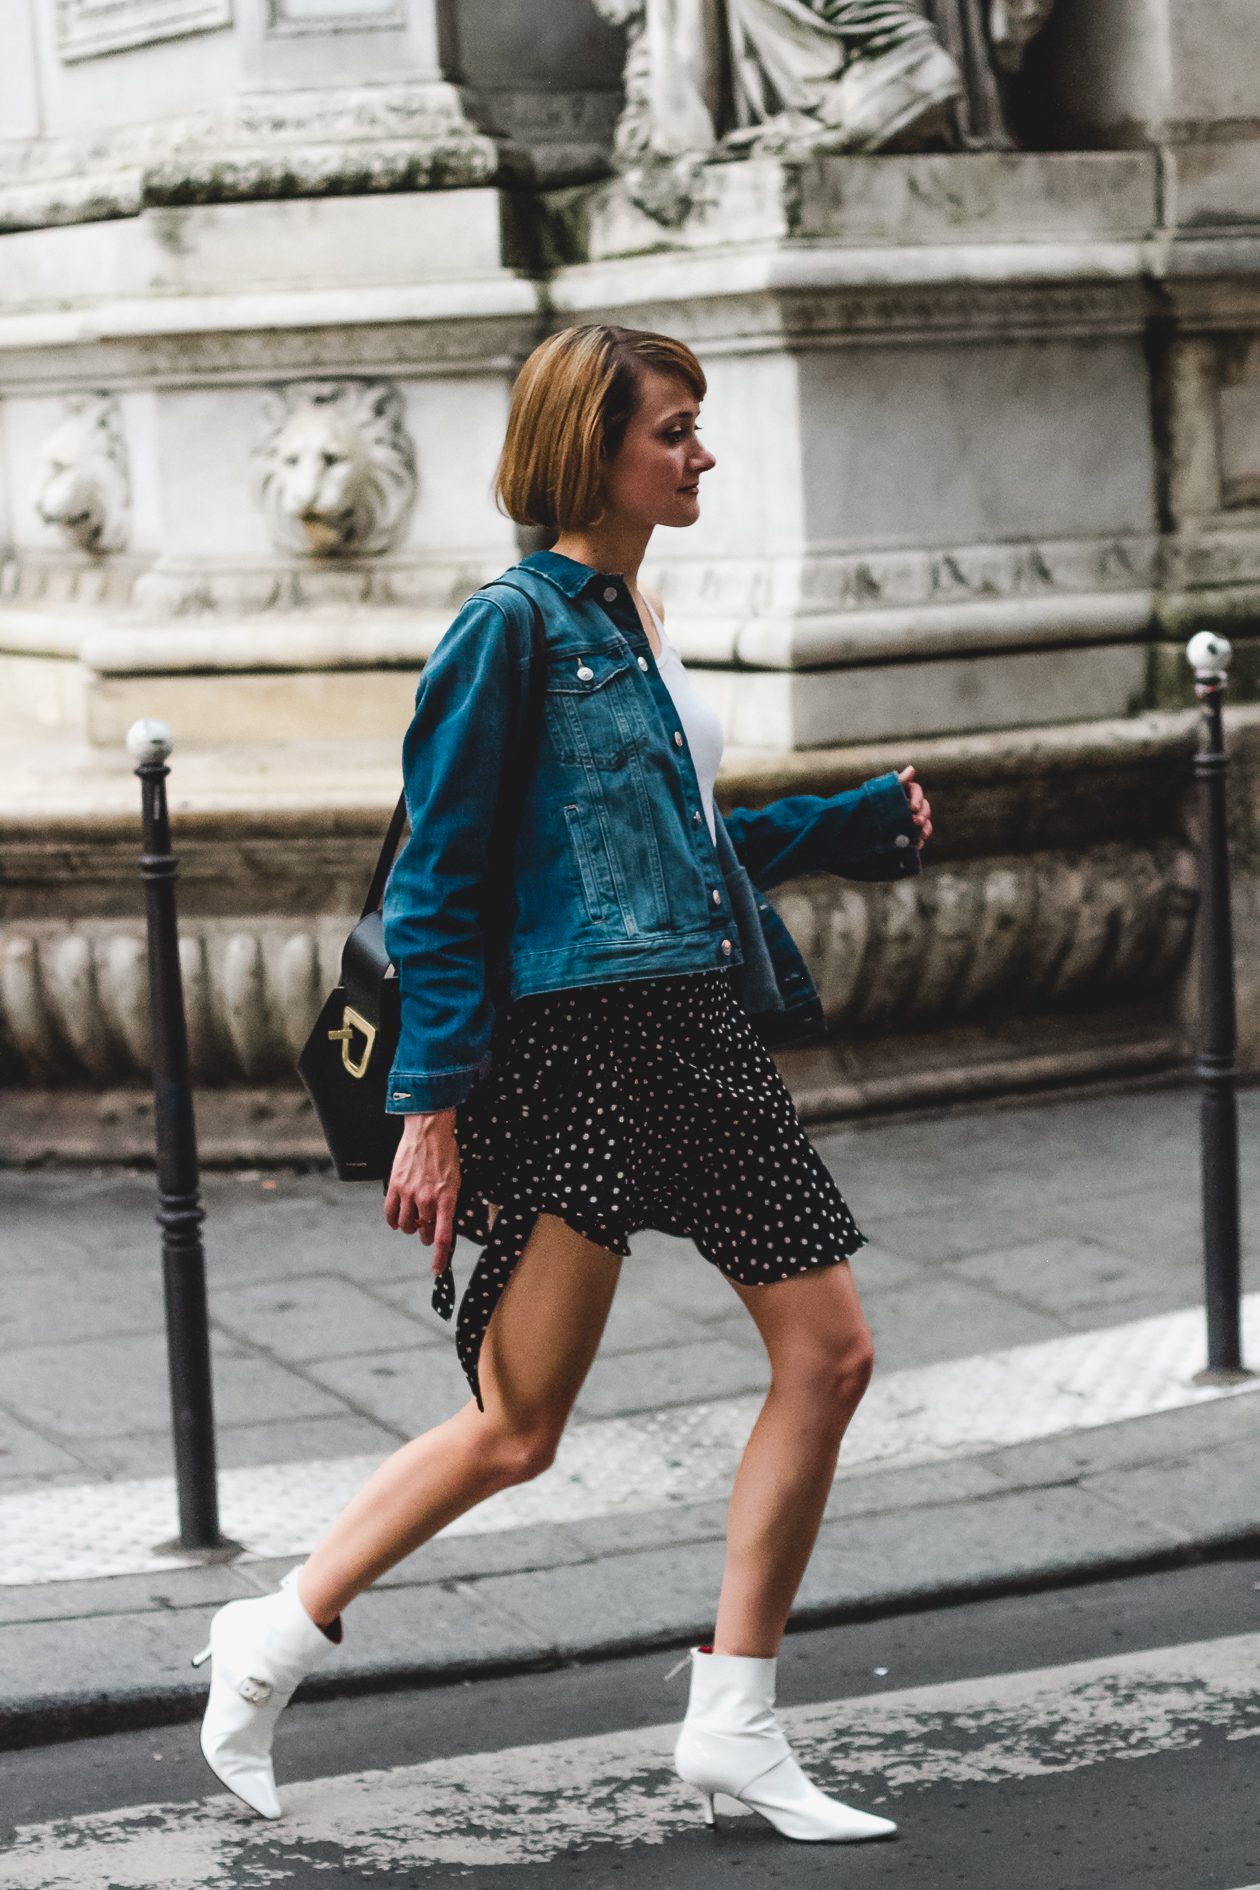 denim jacket, polka dot skirt, Dorateymur boots, and Danse Lente bag